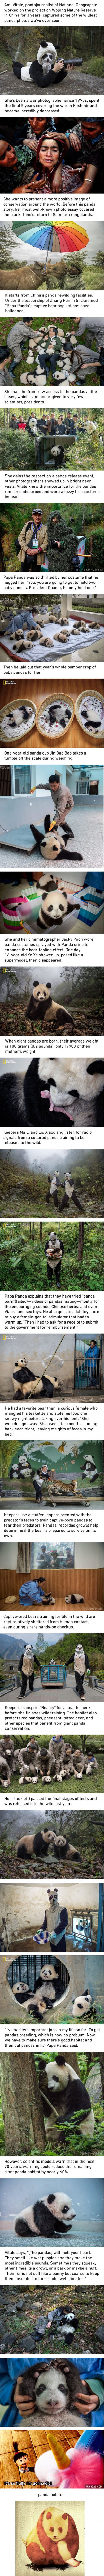 Photographer Captures The Wildest Panda Photos In An Urine-Soaked Panda Suit (Ami Vitale)